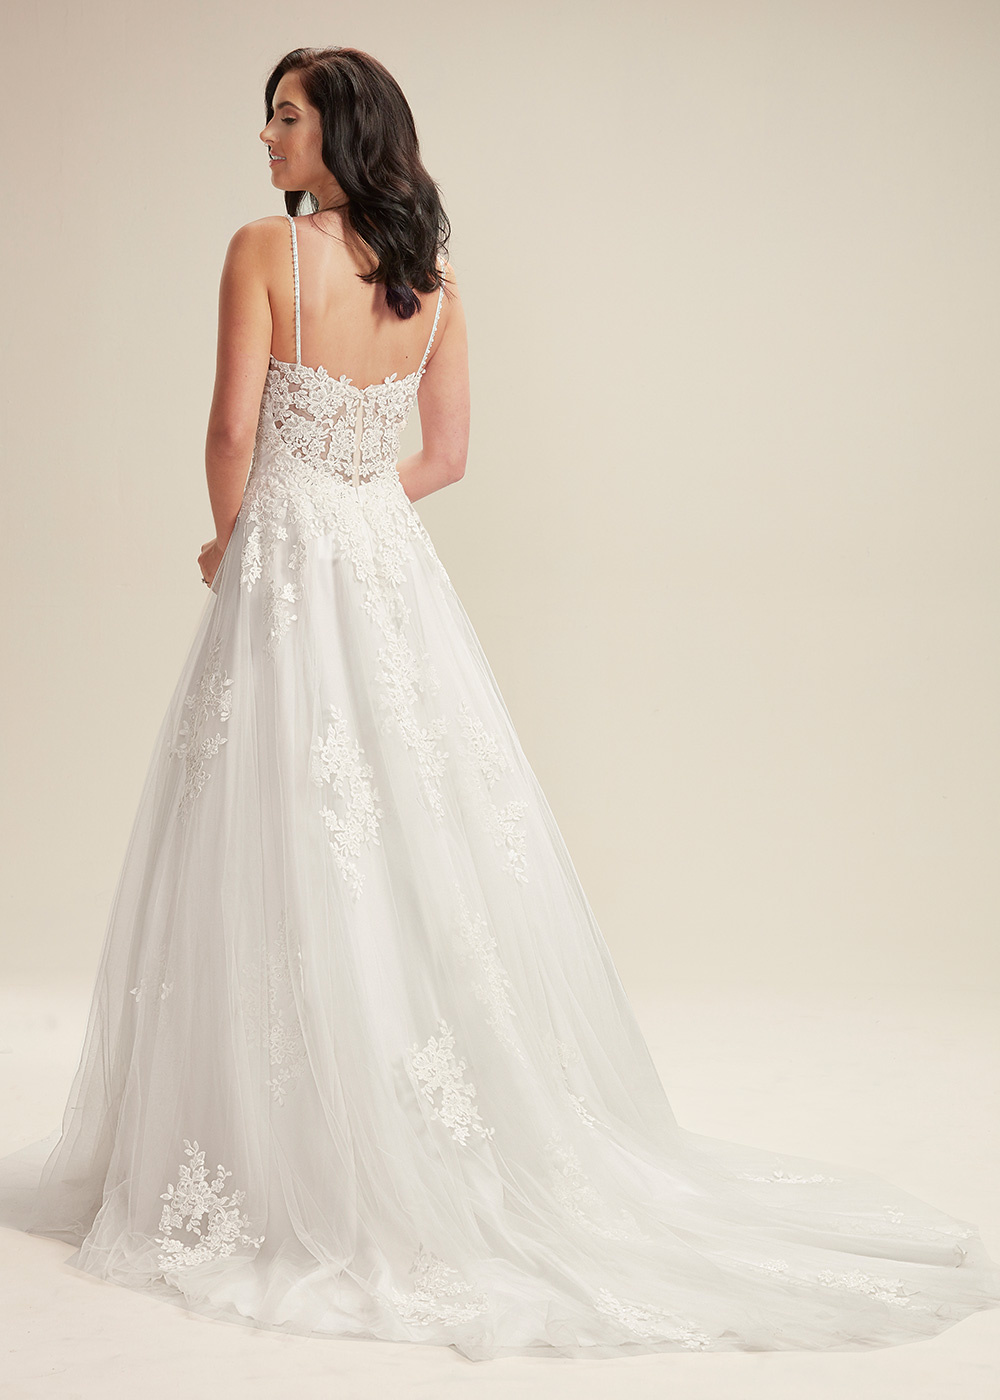 TH-Caroline TH Wedding Dresses By Ashdon